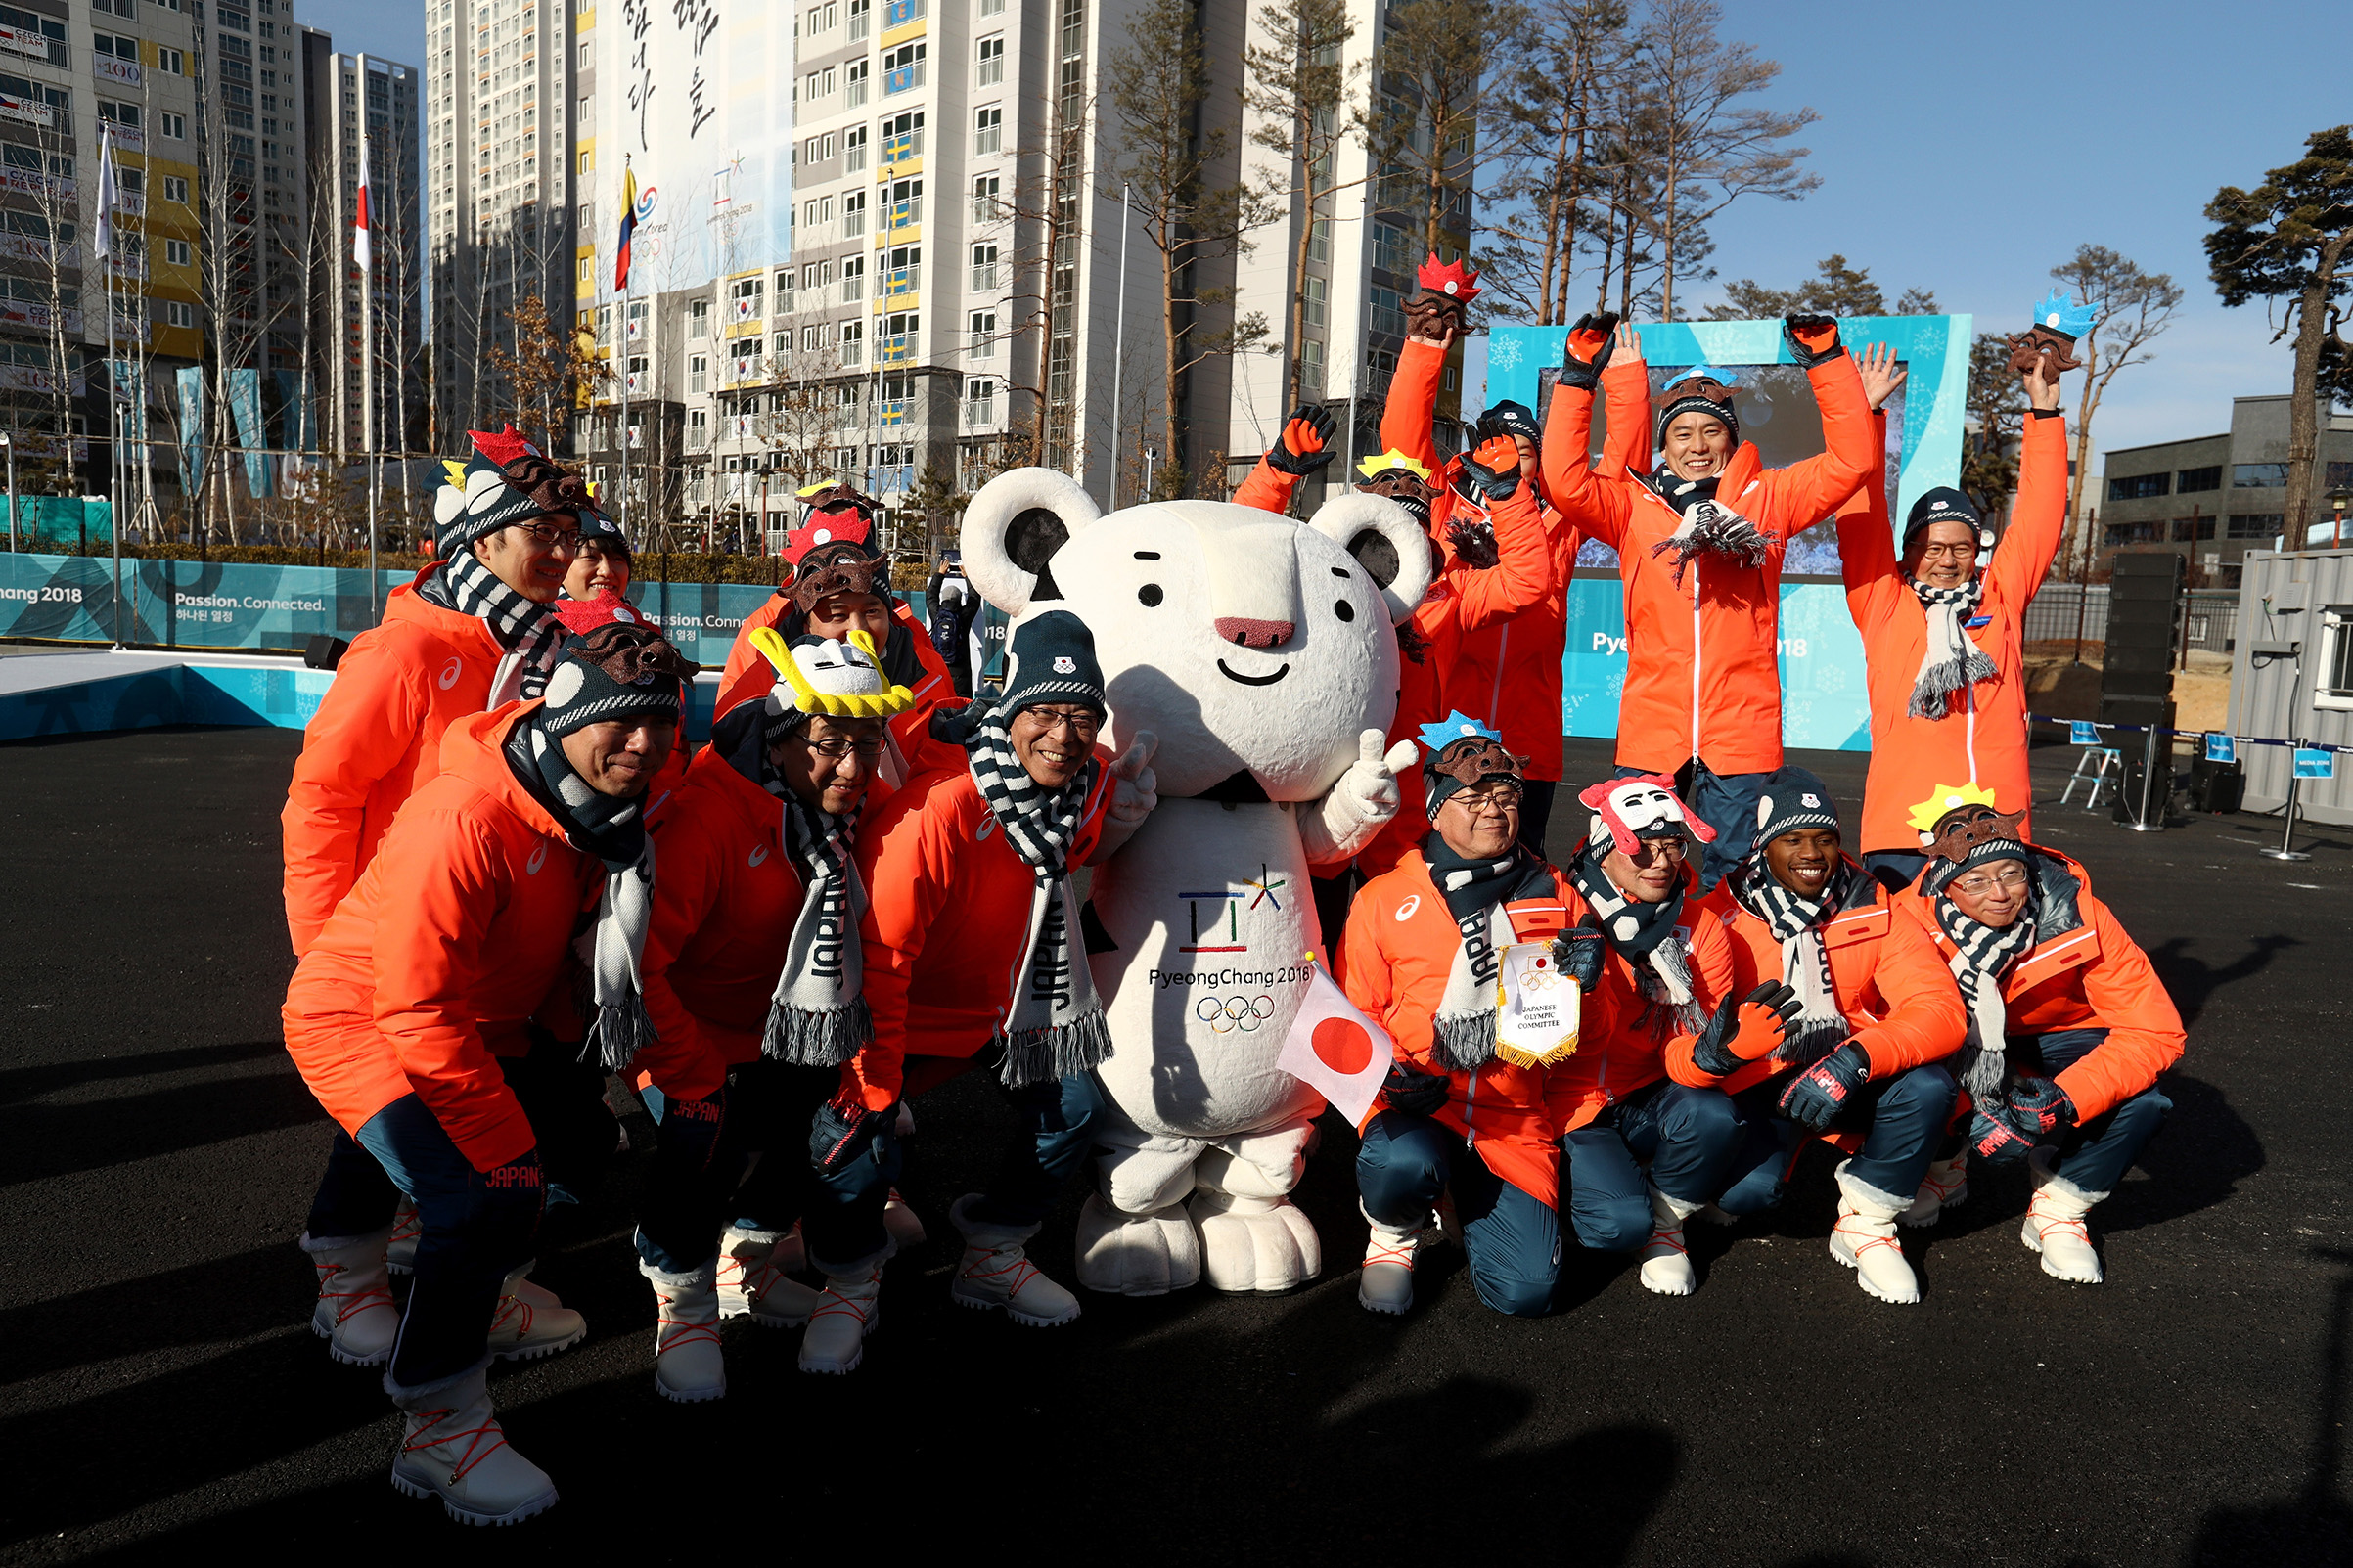 Members of the Japan team pose with mascot Soohorang ahead of the PyeongChang 2018 Winter Olympic Games on Feb. 7, 2018.